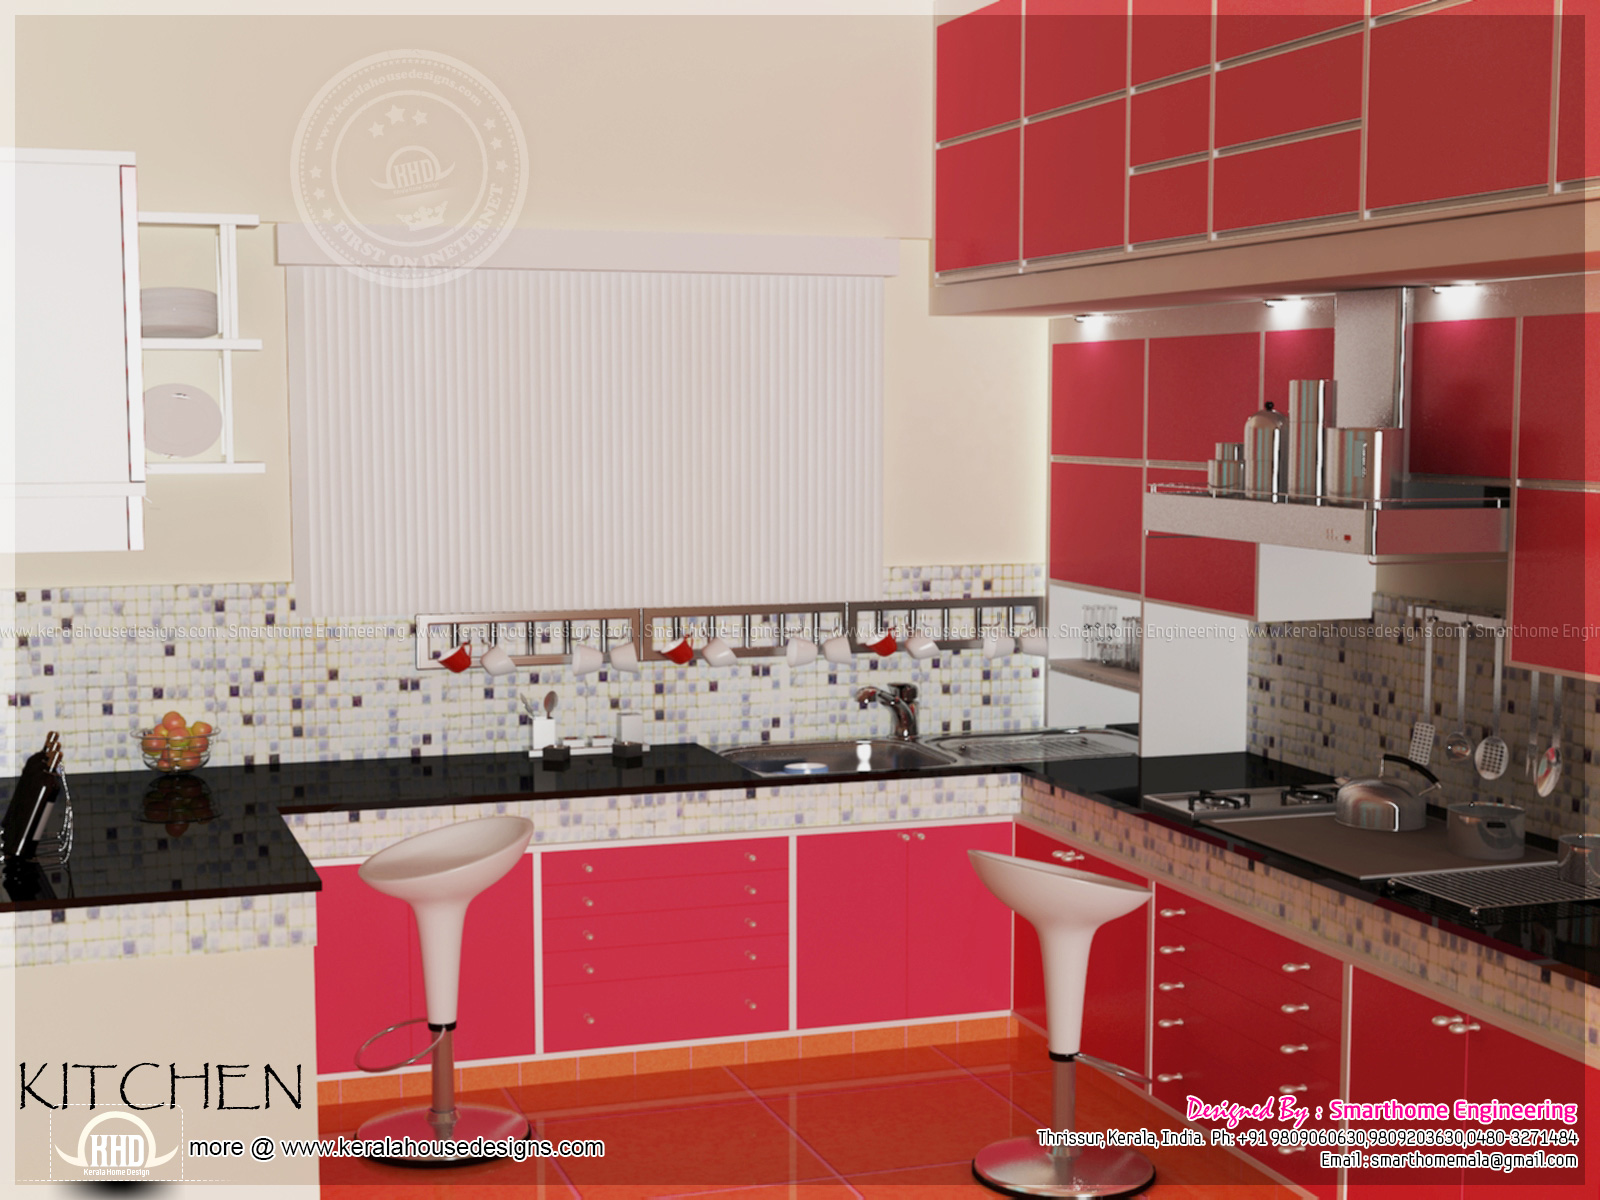 Home interior design by smarthome engineering thrissur Kitchen design for village